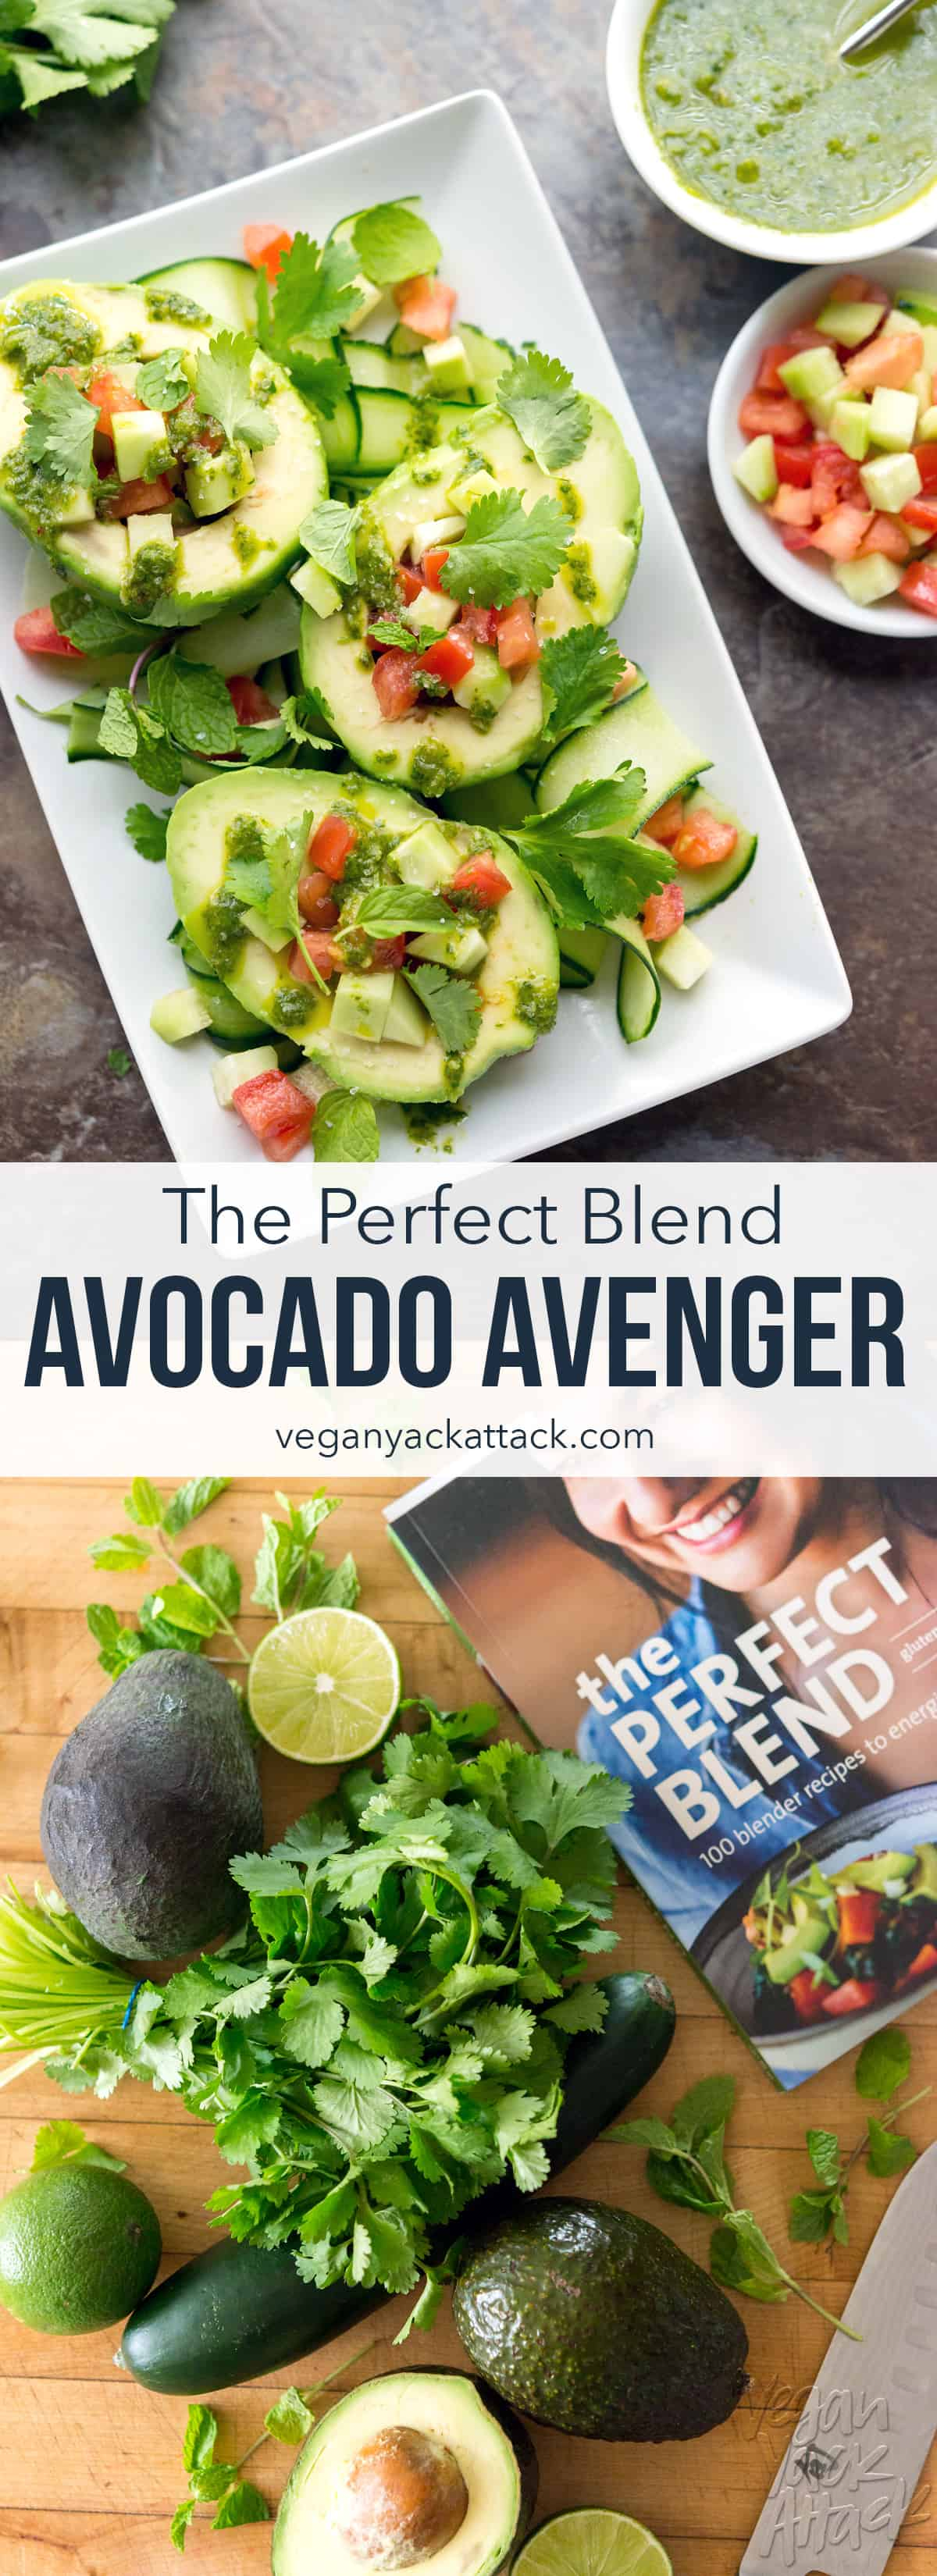 Avocado Avenger from The Perfect Blend Cookbook - An easy chimichurri sauce covering delicious, filled avocados! #ThePerfectBlend #vegan #vegetarian